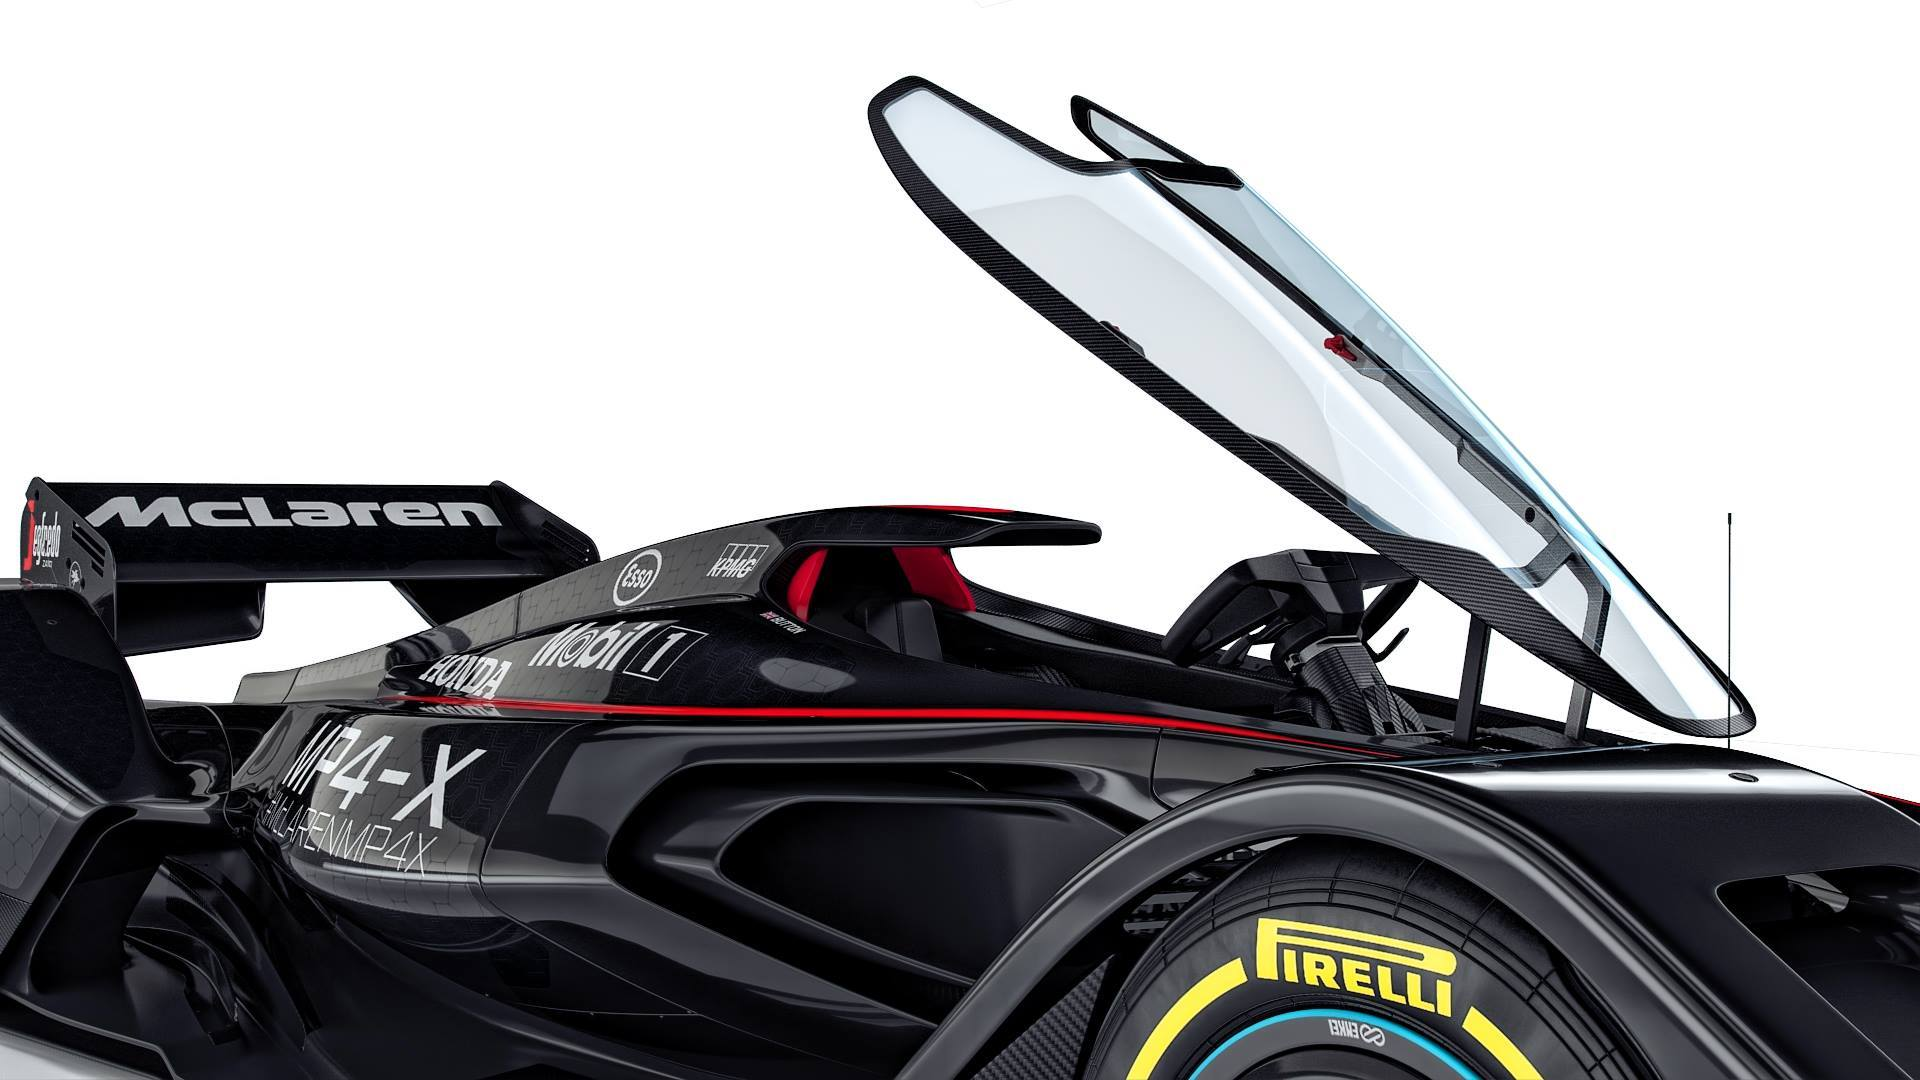 rc cars pictures with F1 Future Mclaren Mp4 X 6 on F1 Future Mclaren Mp4 X 6 likewise Audi Virtual Training Car Pictures as well 7 Toyota Soarer Vertex Edition furthermore Attachment additionally Cars reviews Peugeot Rc.